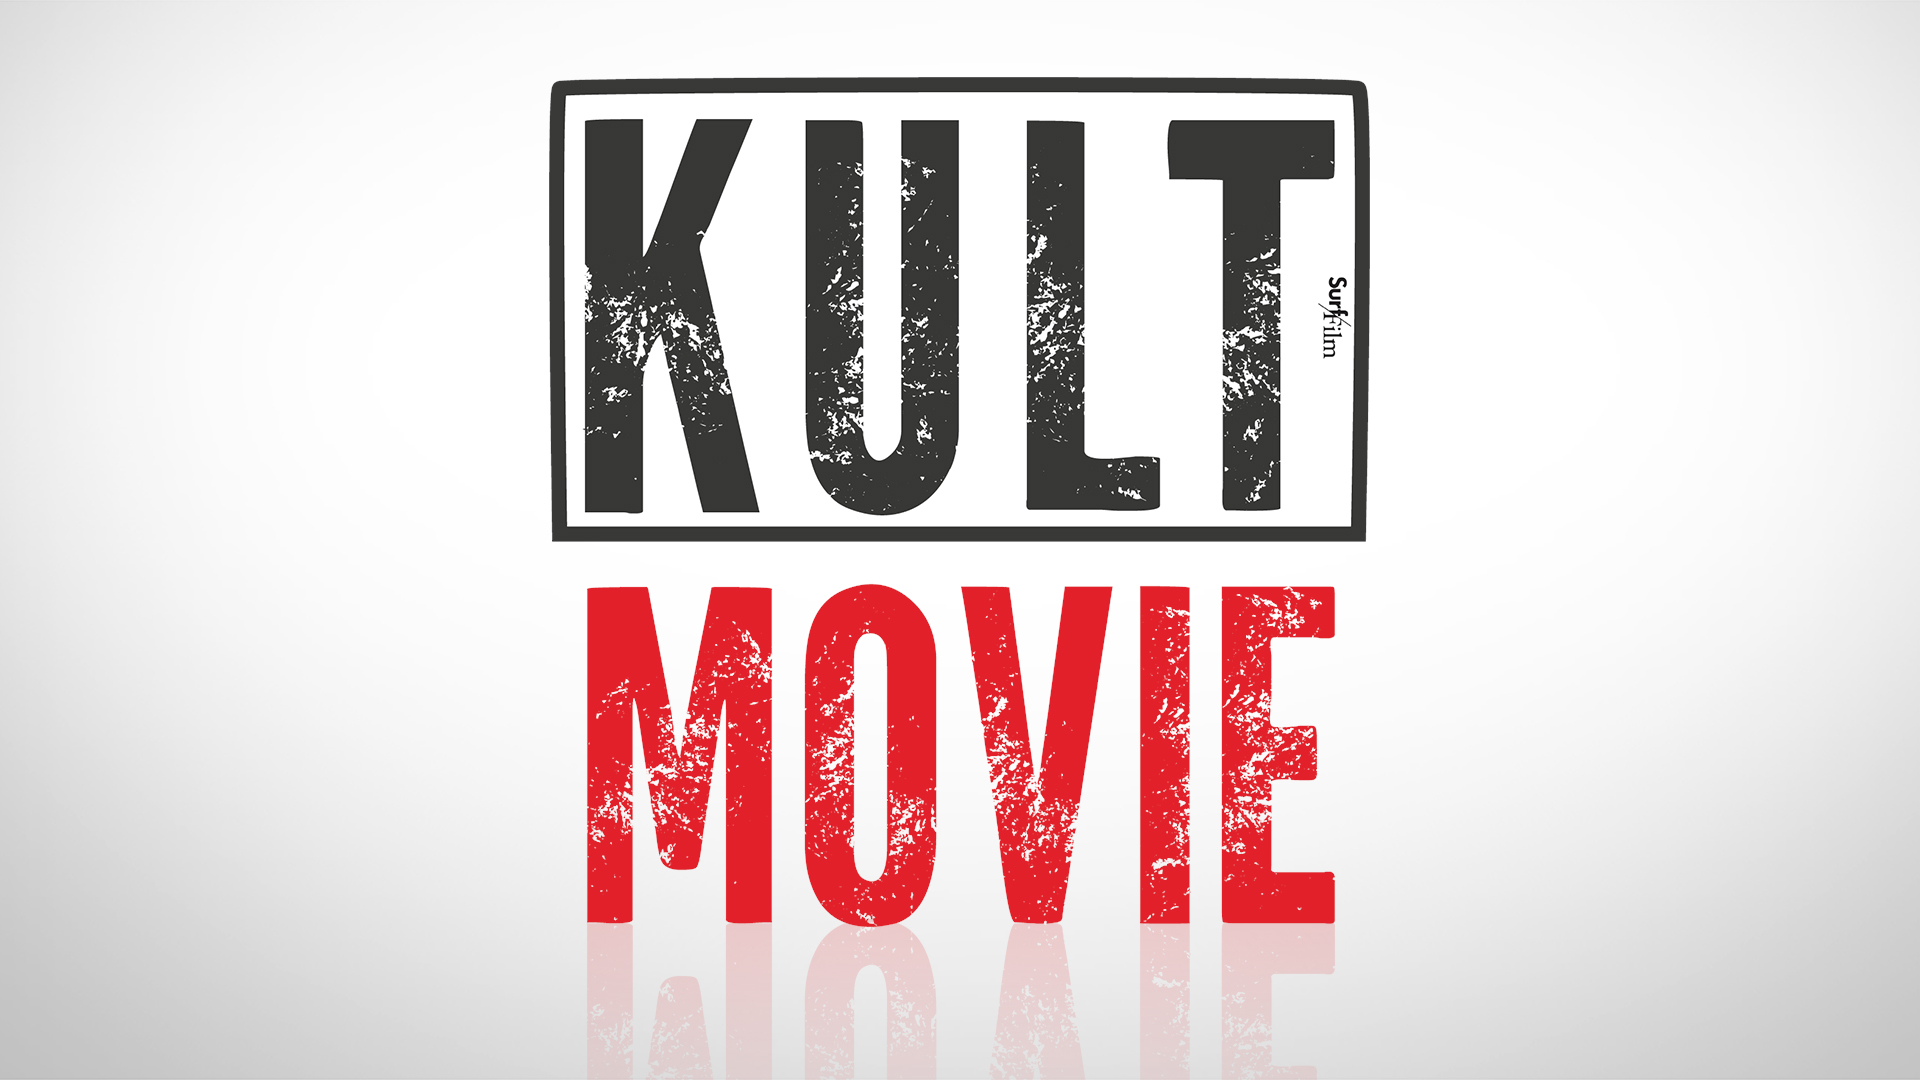 http://www.surffilm.com/wordpress/wp-content/uploads/2019/06/Movie-Kult_Anteprima-Logo-JPEG.jpg